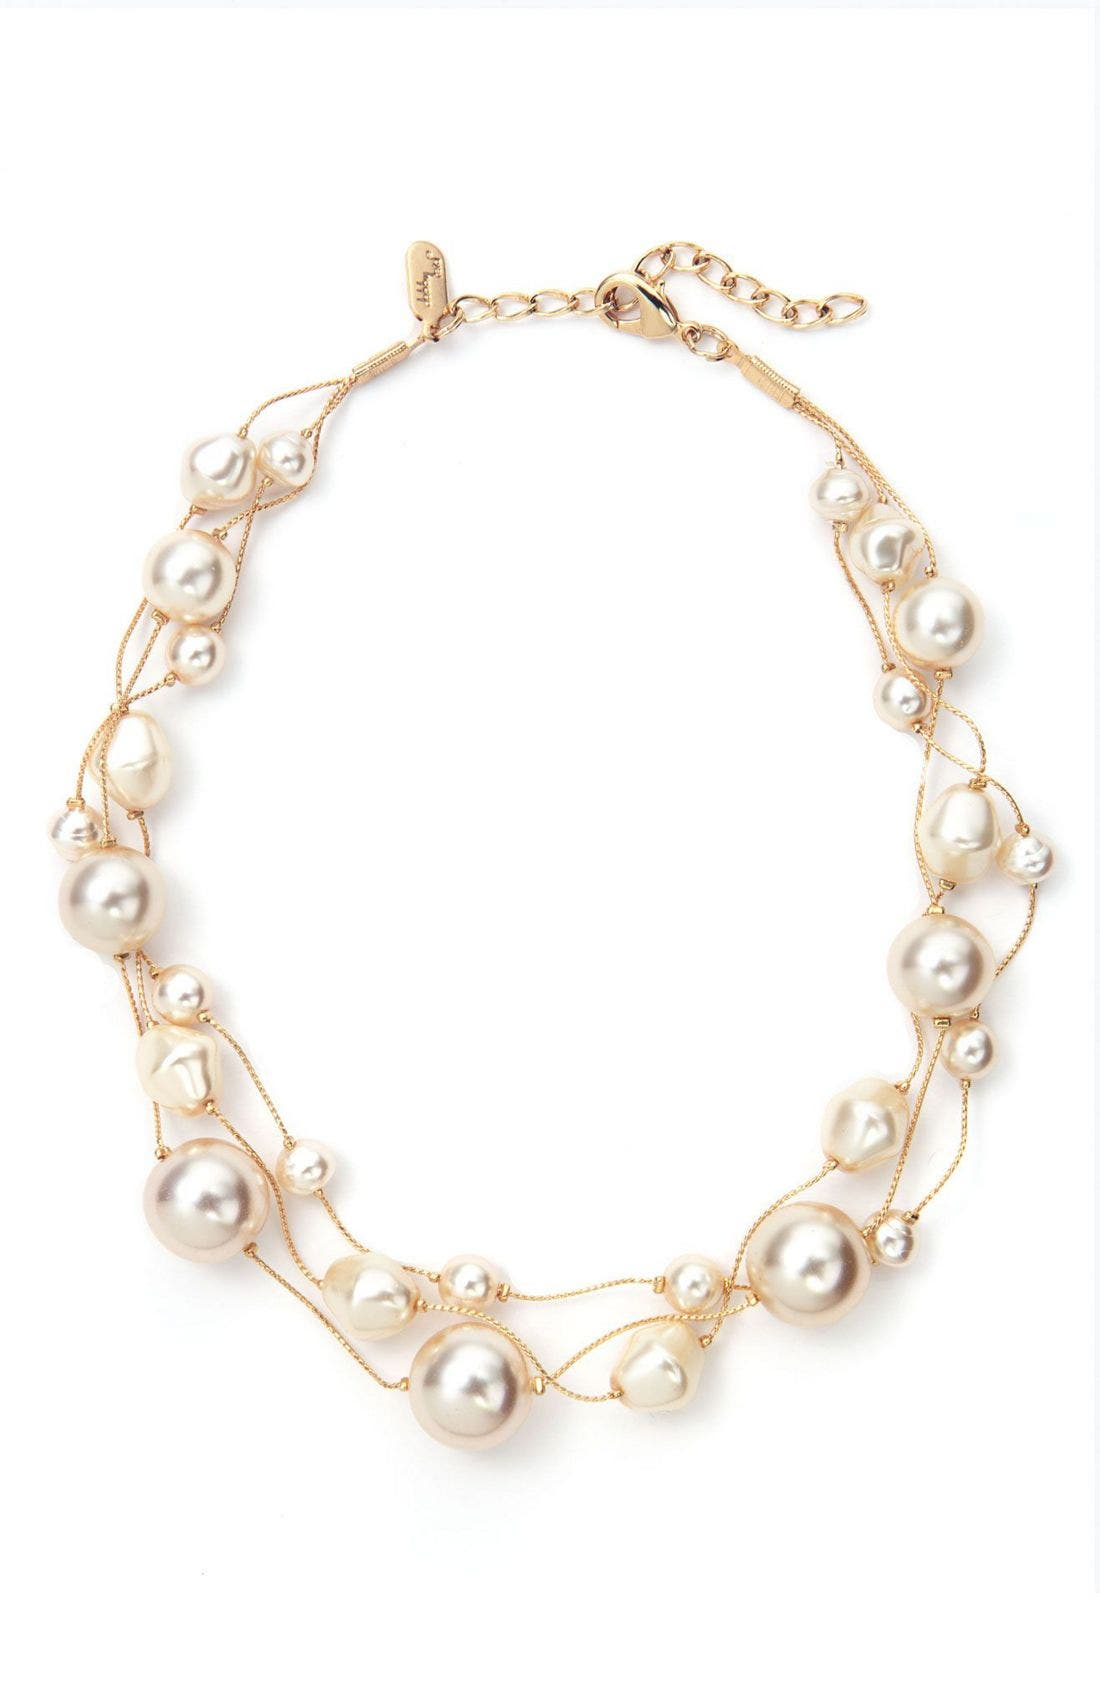 Main Image - Dabby Reid Three Strand Pearl Necklace